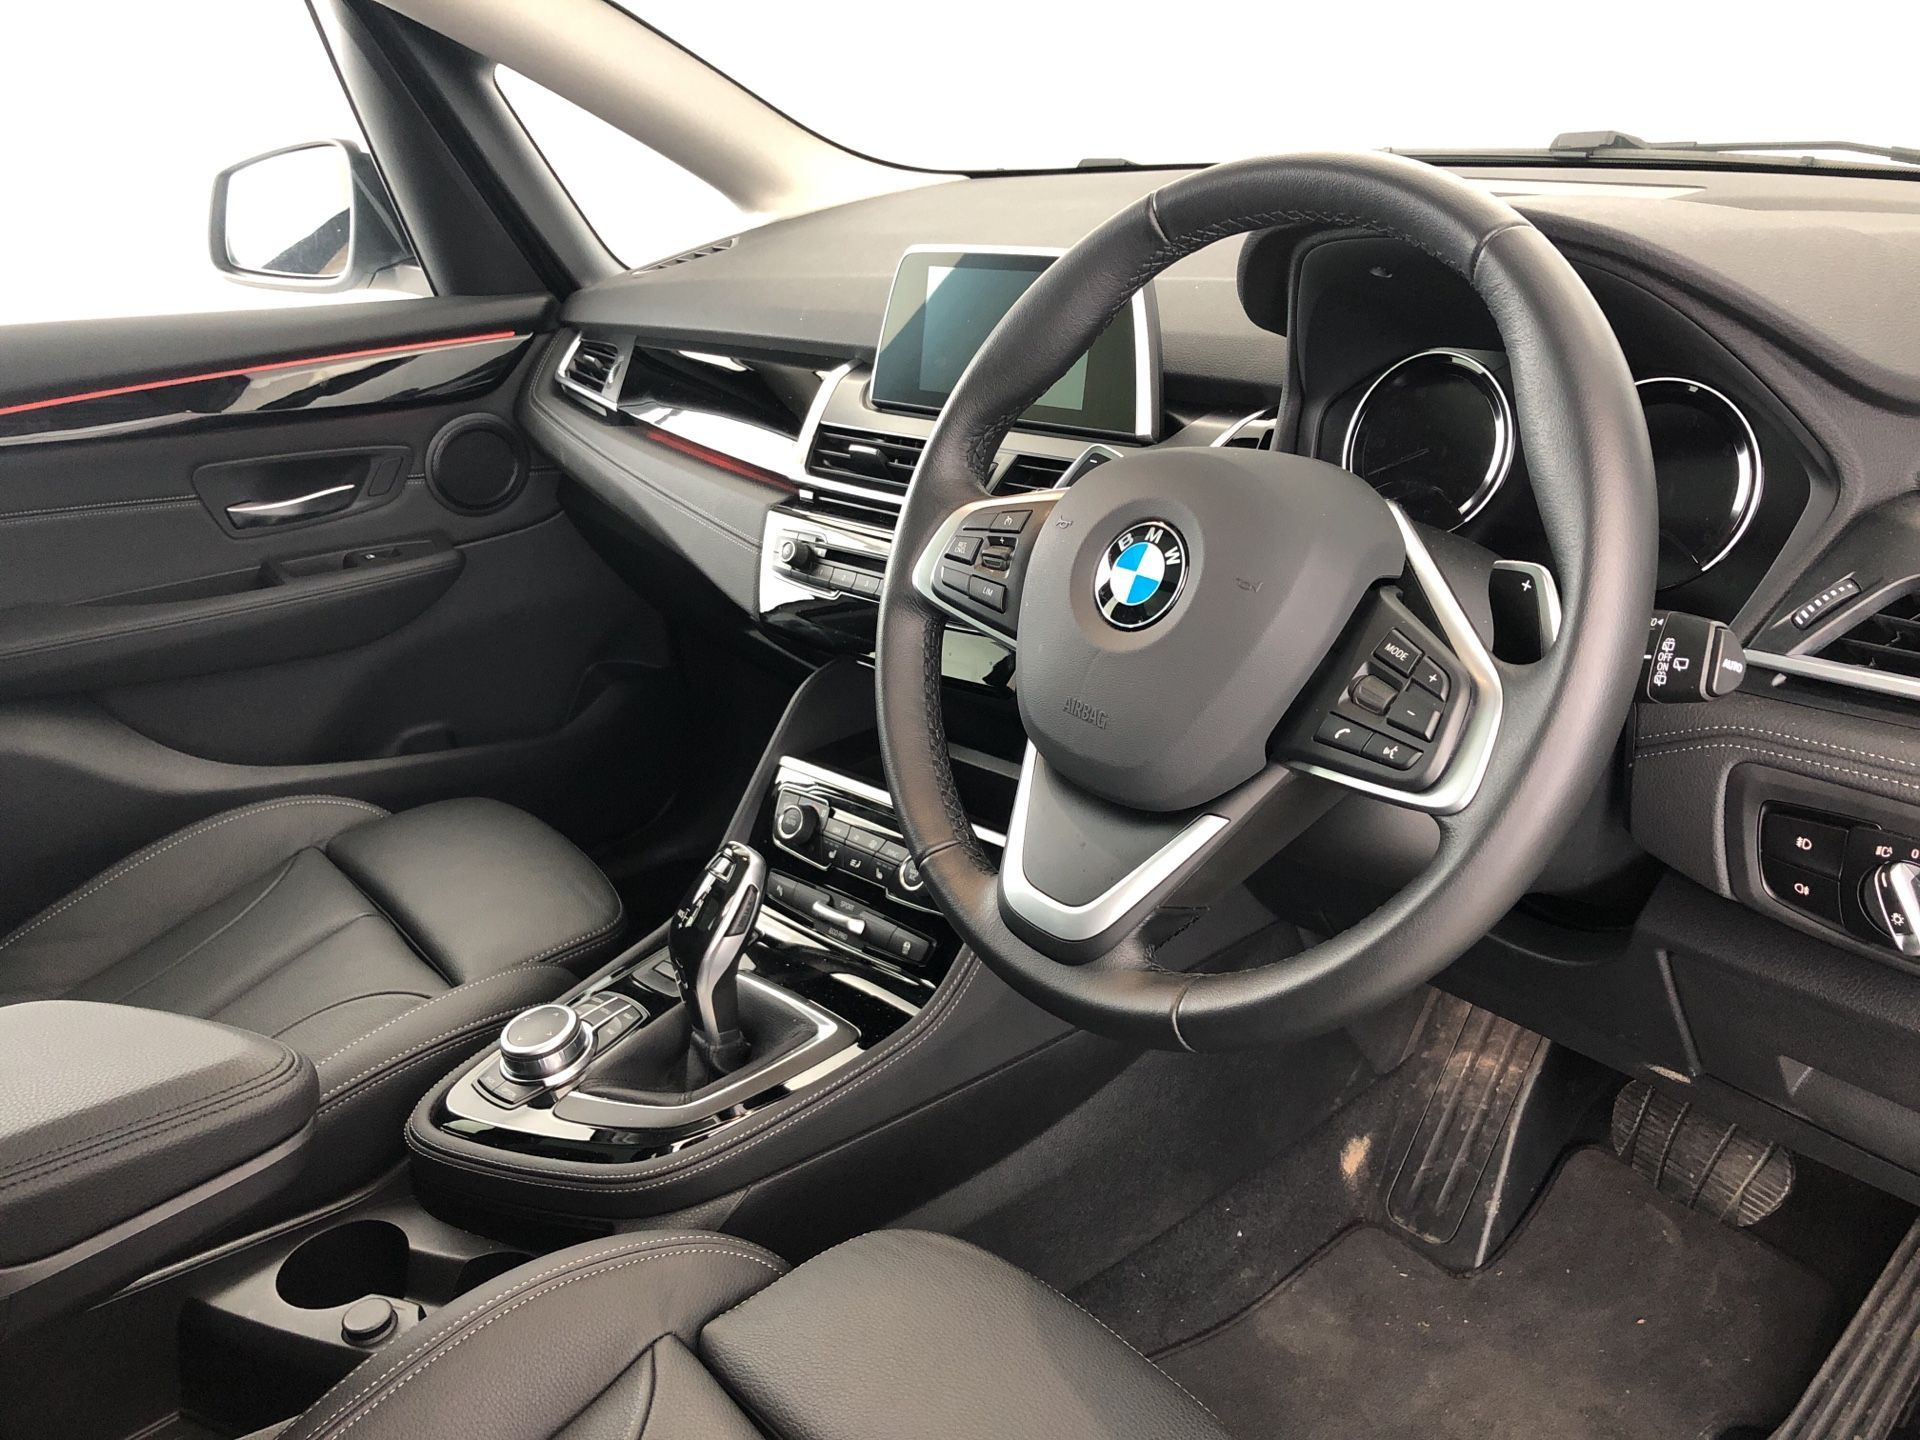 Image 4 - BMW 220d xDrive Luxury Active Tourer (YF19HWS)